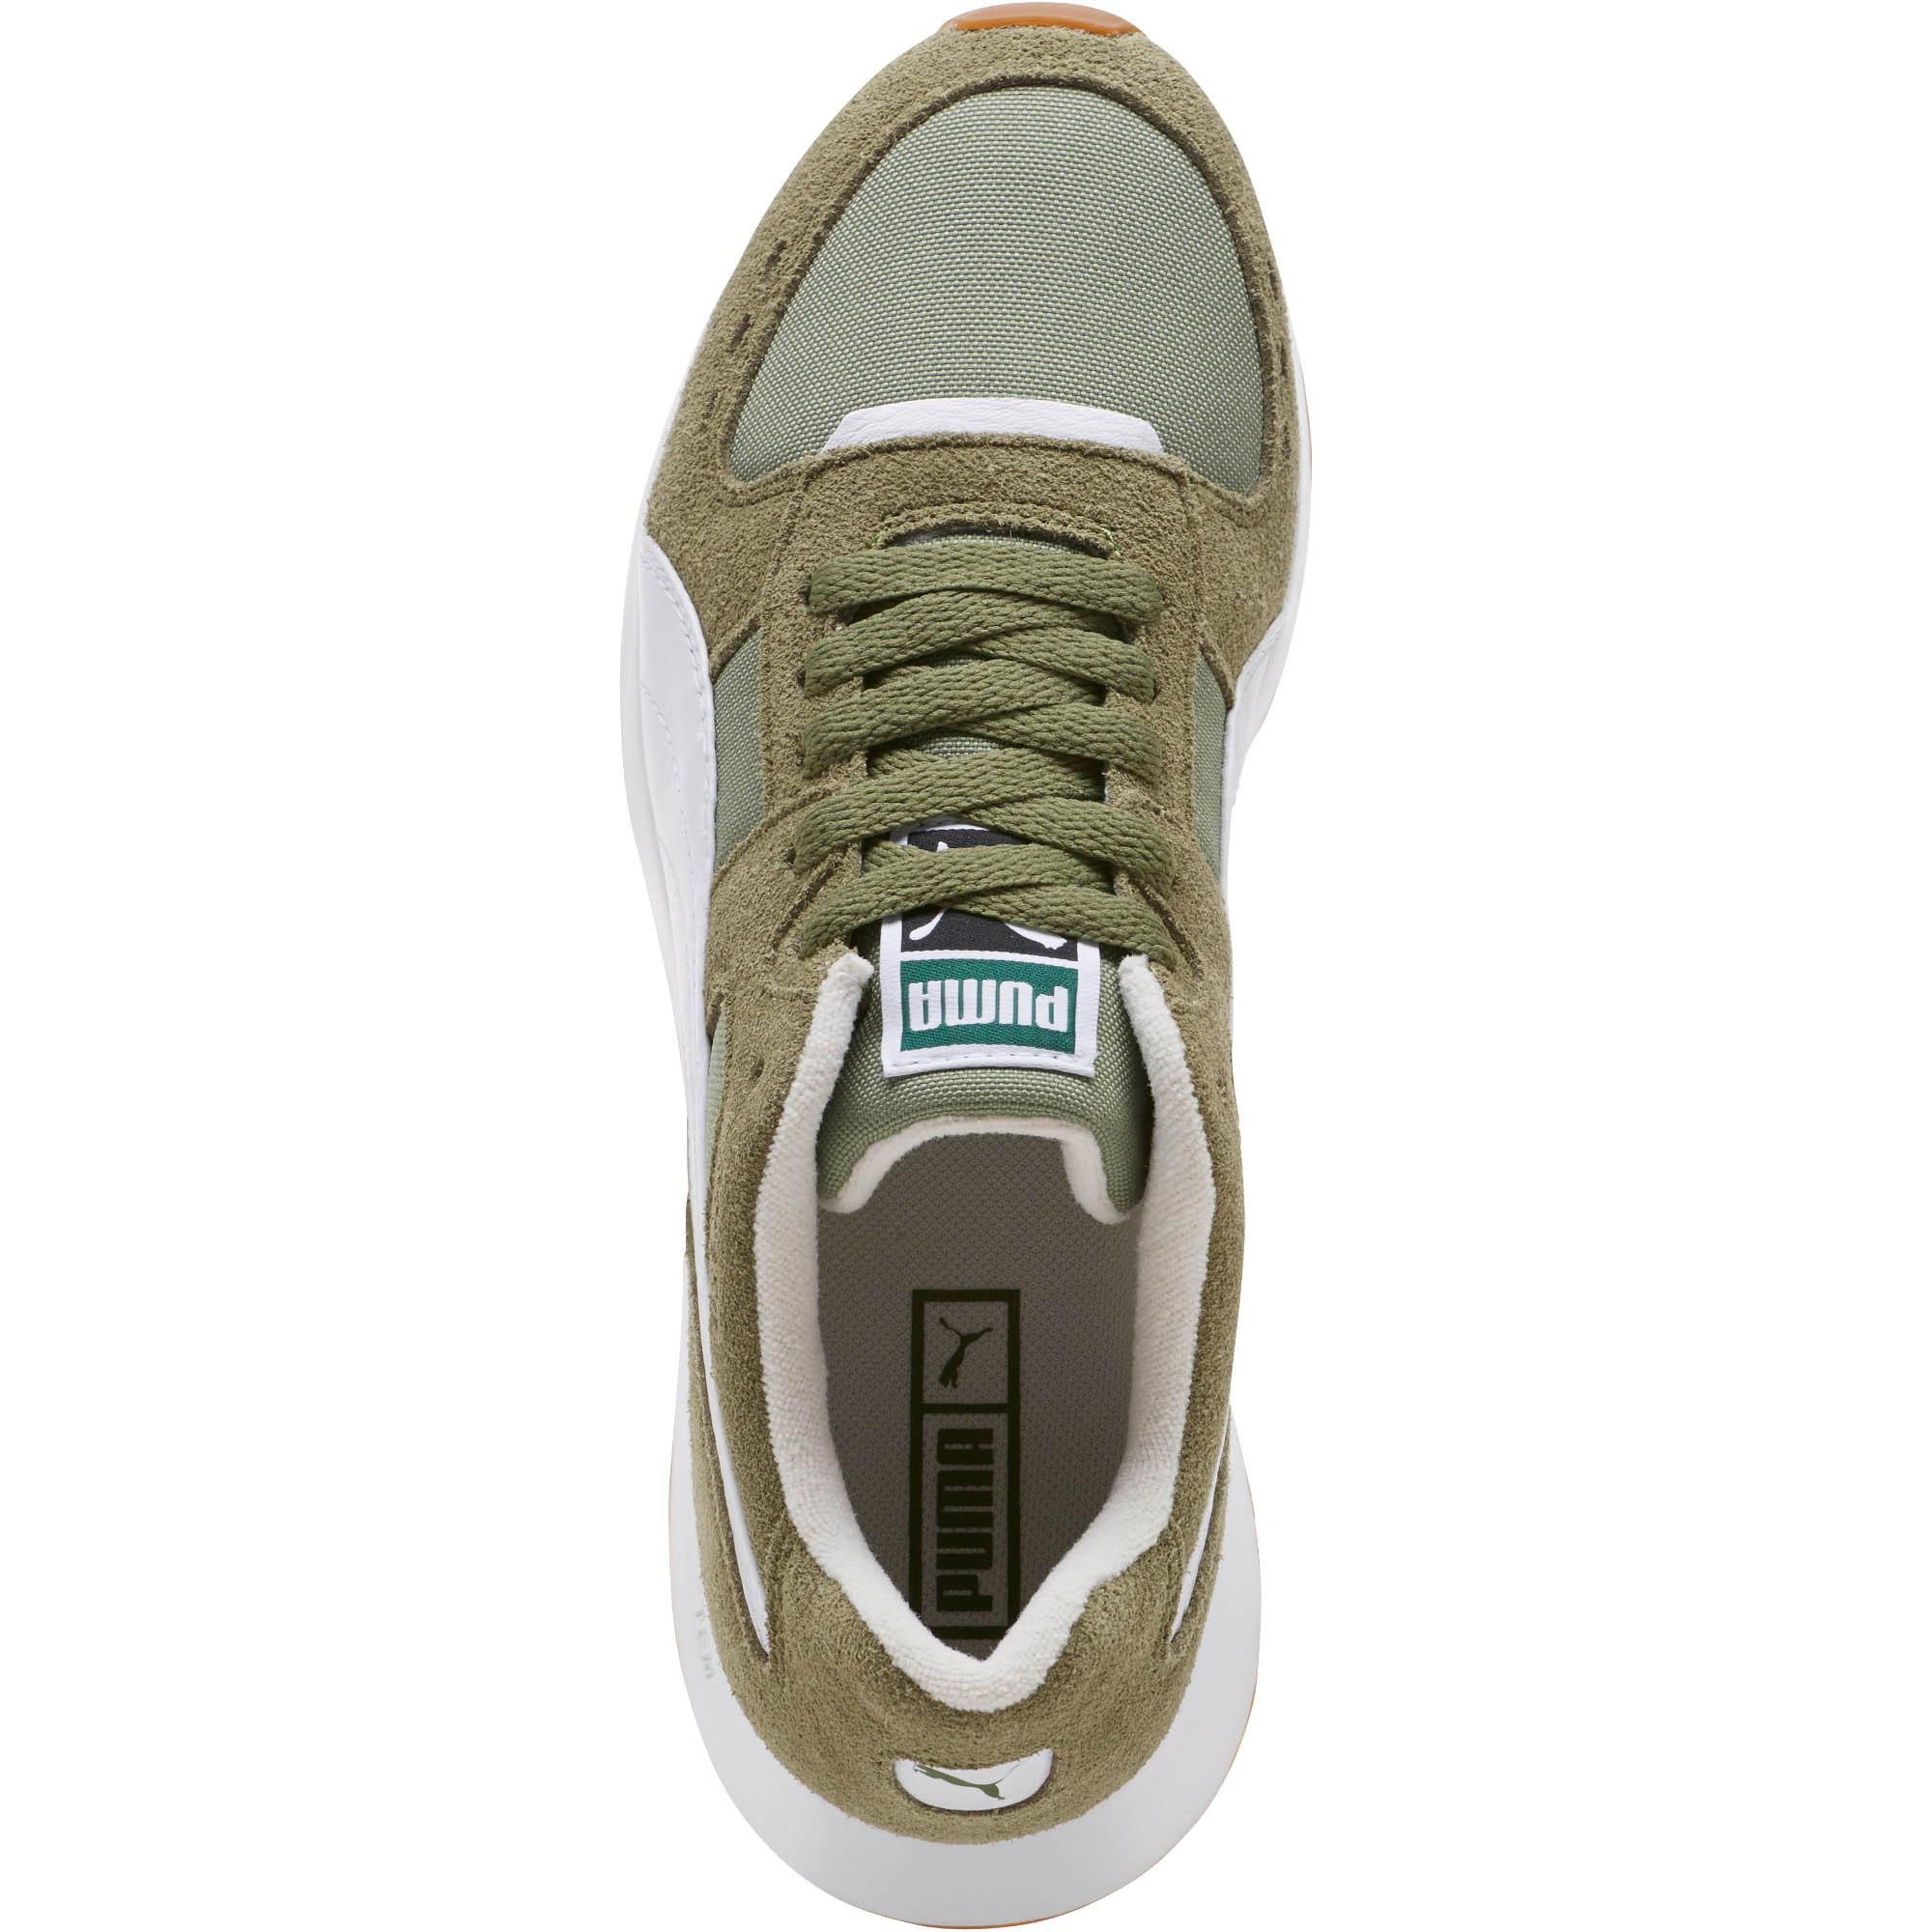 Sneakers Lyst 150 Green Puma Women's Nylon In Rs rqXf4Cwq